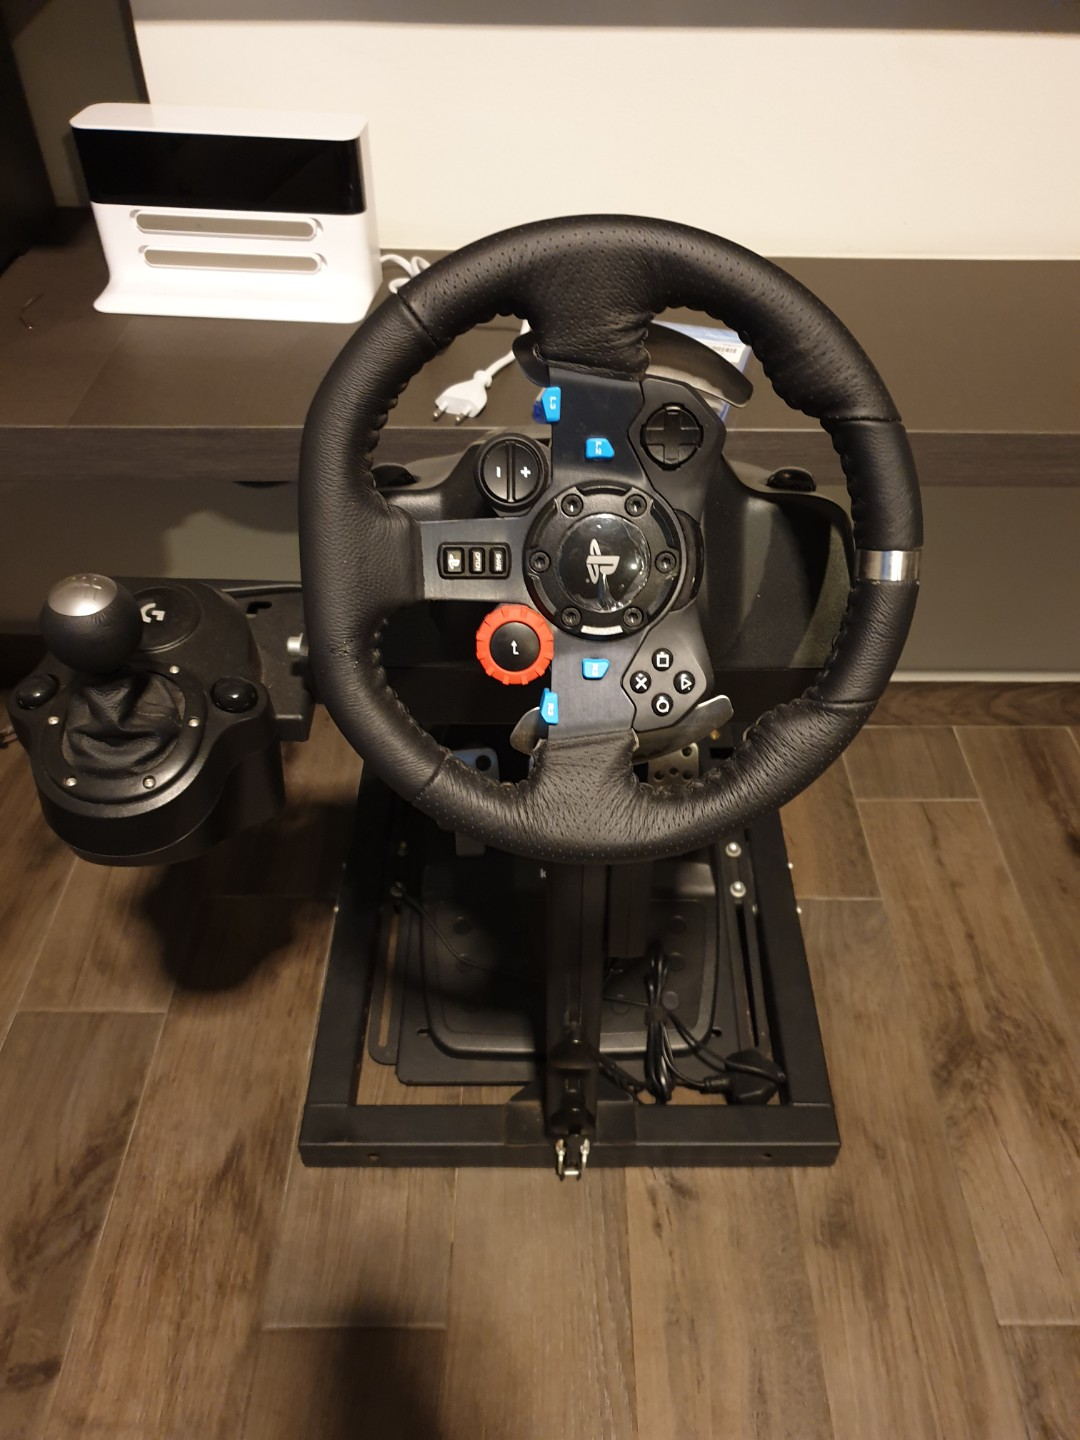 Logitech G29 Driving Force Racing Wheel Shifter Floor Pedals Next Level Racing Wheel Stand Lite Toys Games Video Gaming Gaming Accessories On Carousell